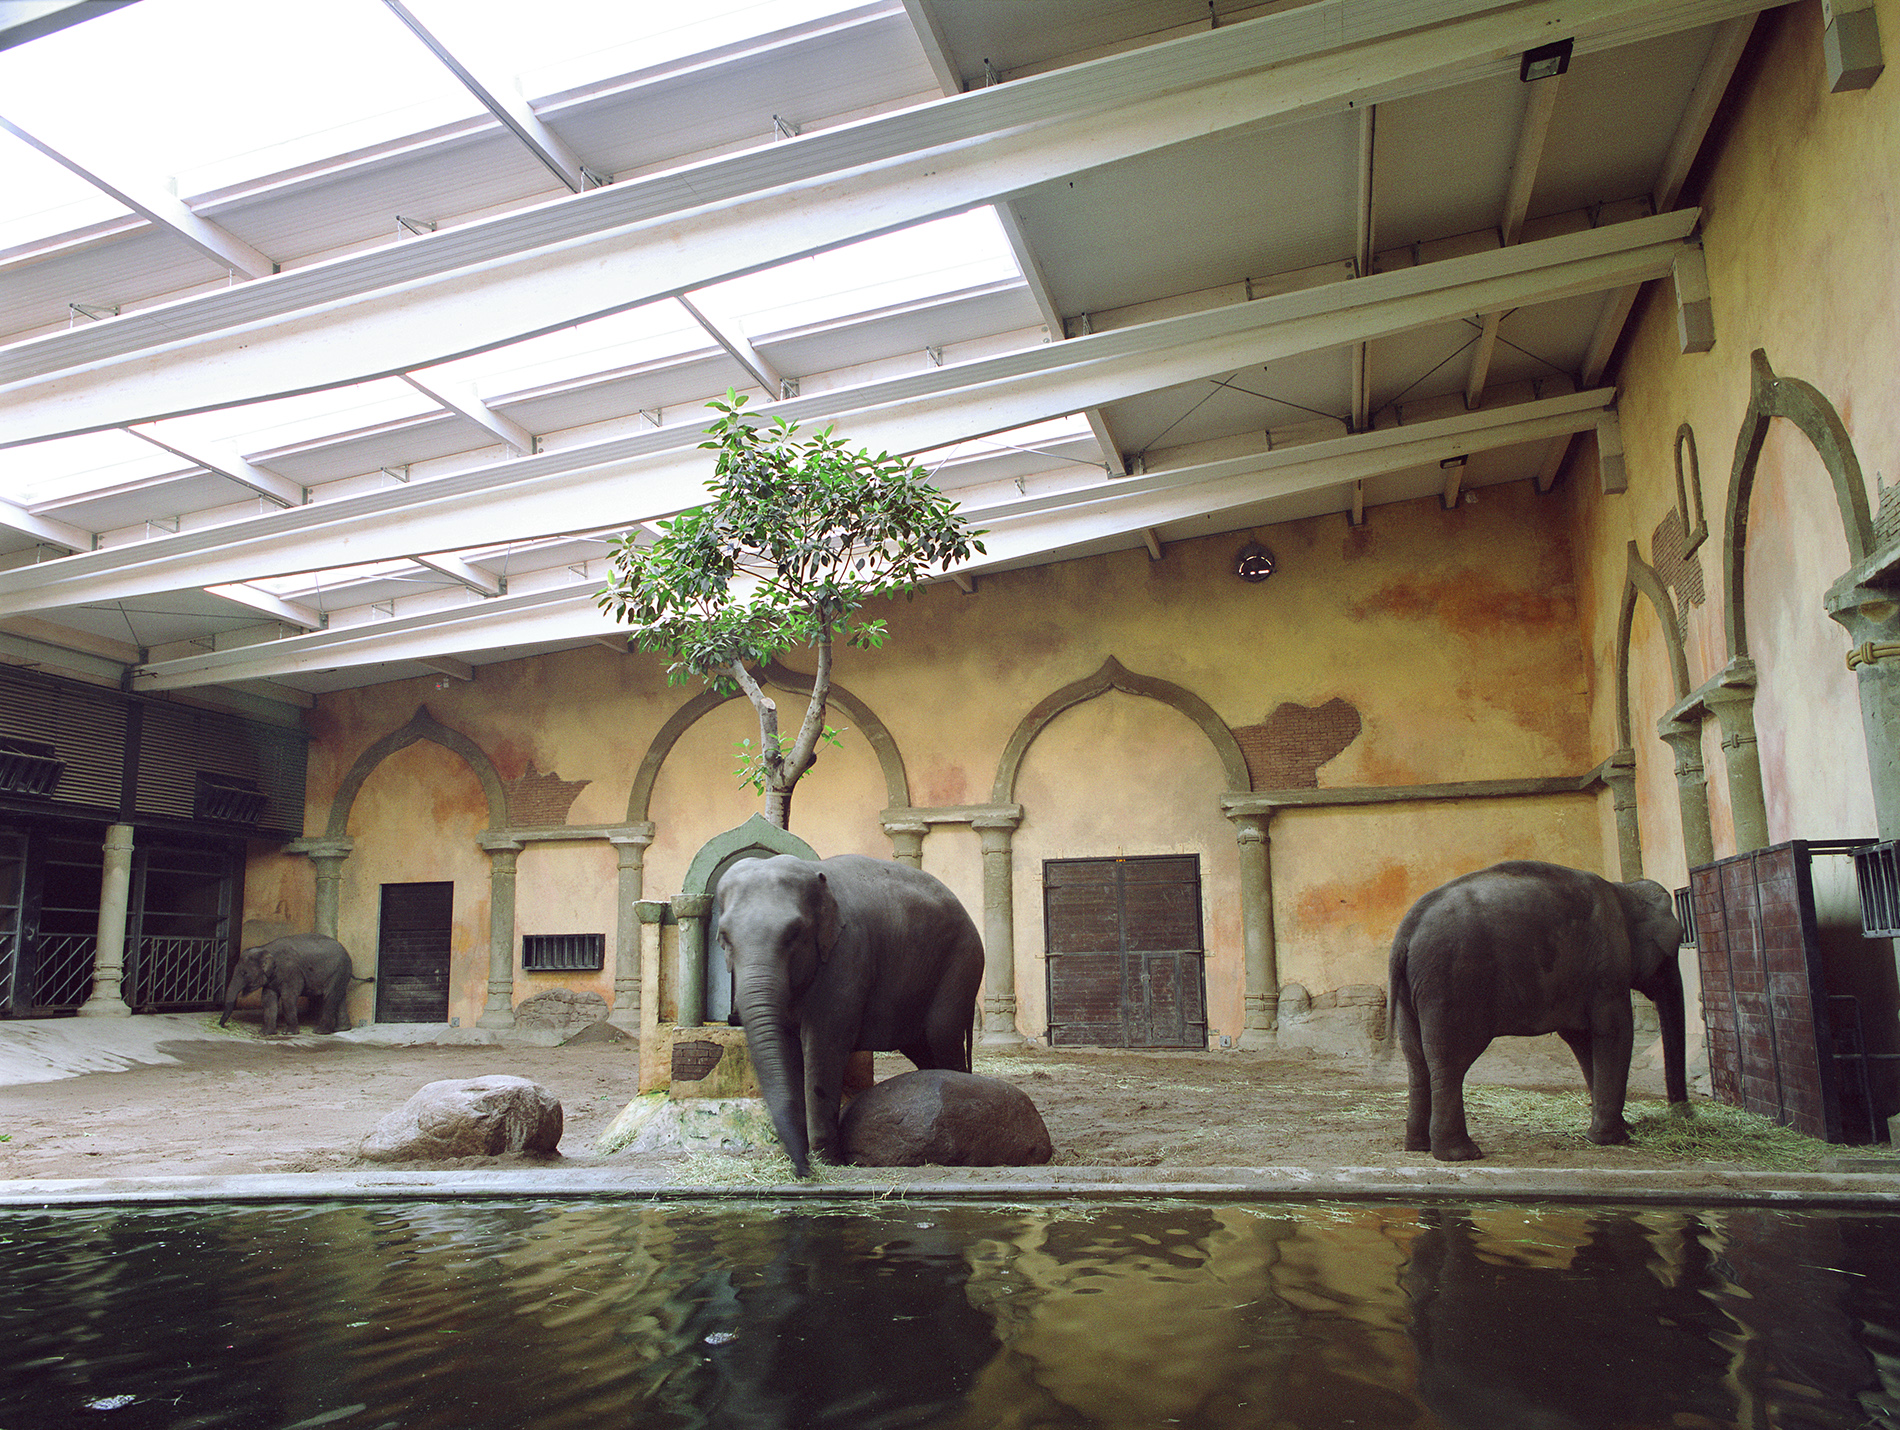 Elephants at Hamburg Zoo